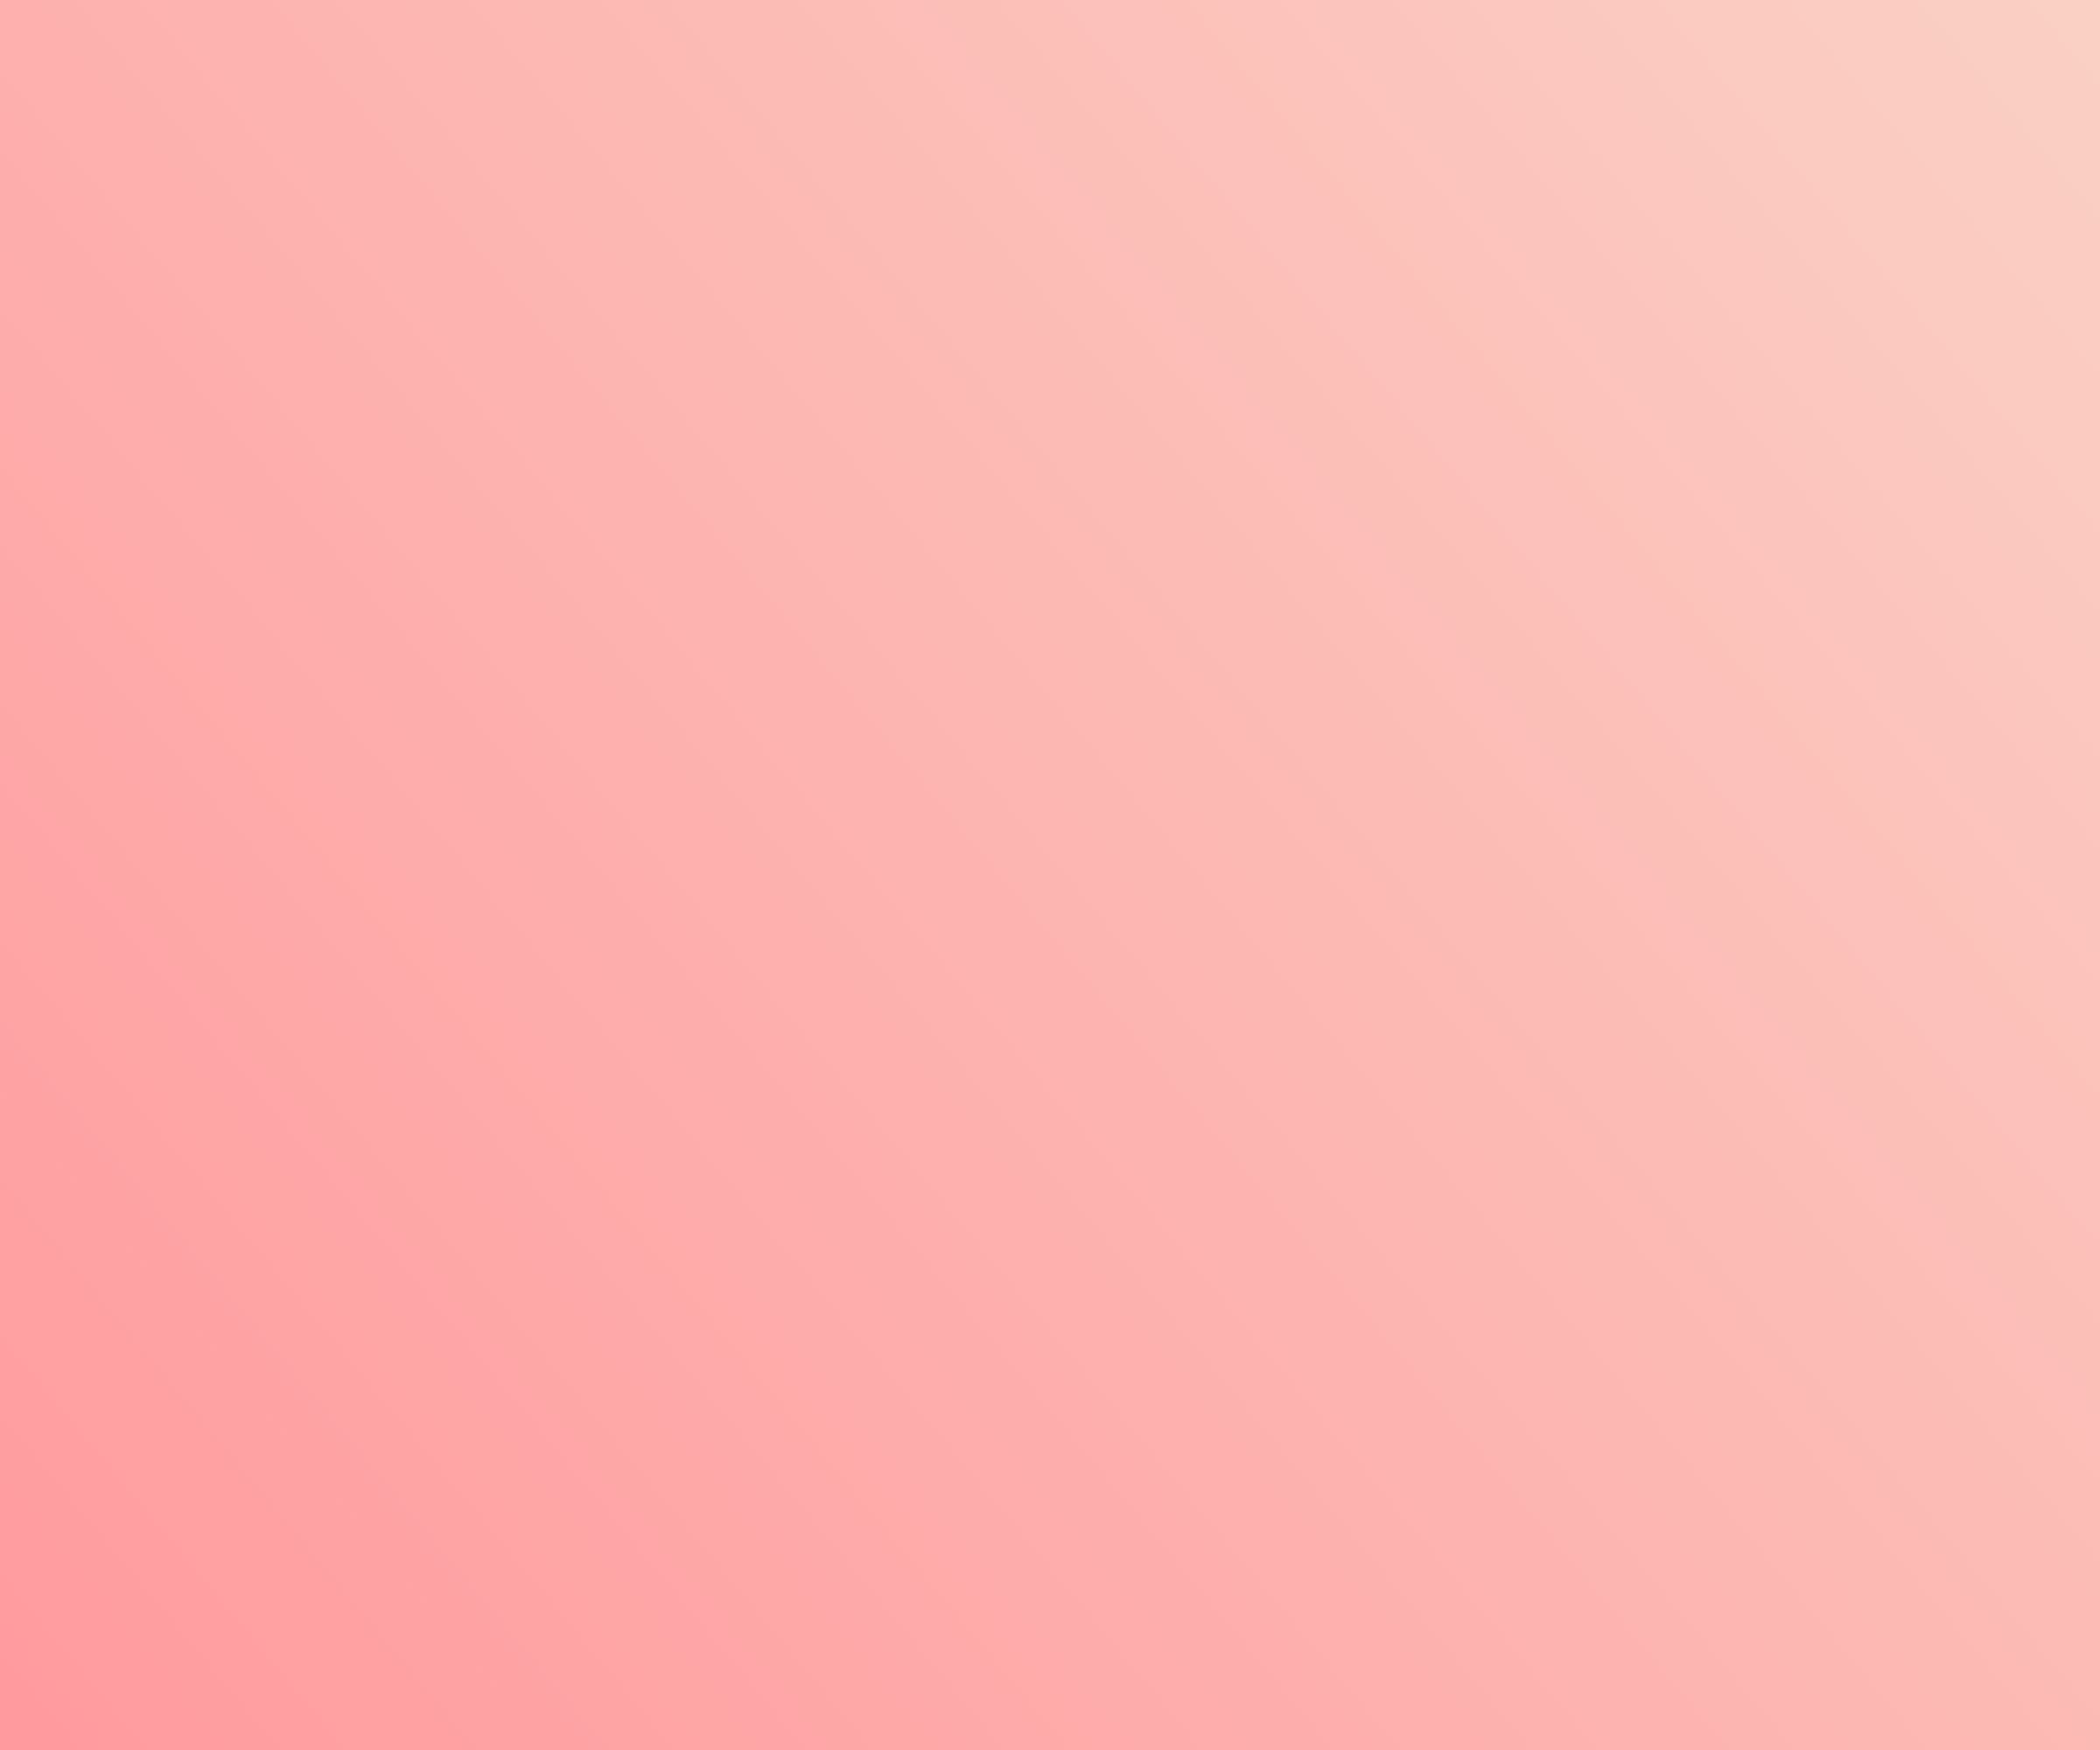 Fresh Background Gradients Webgradients Com